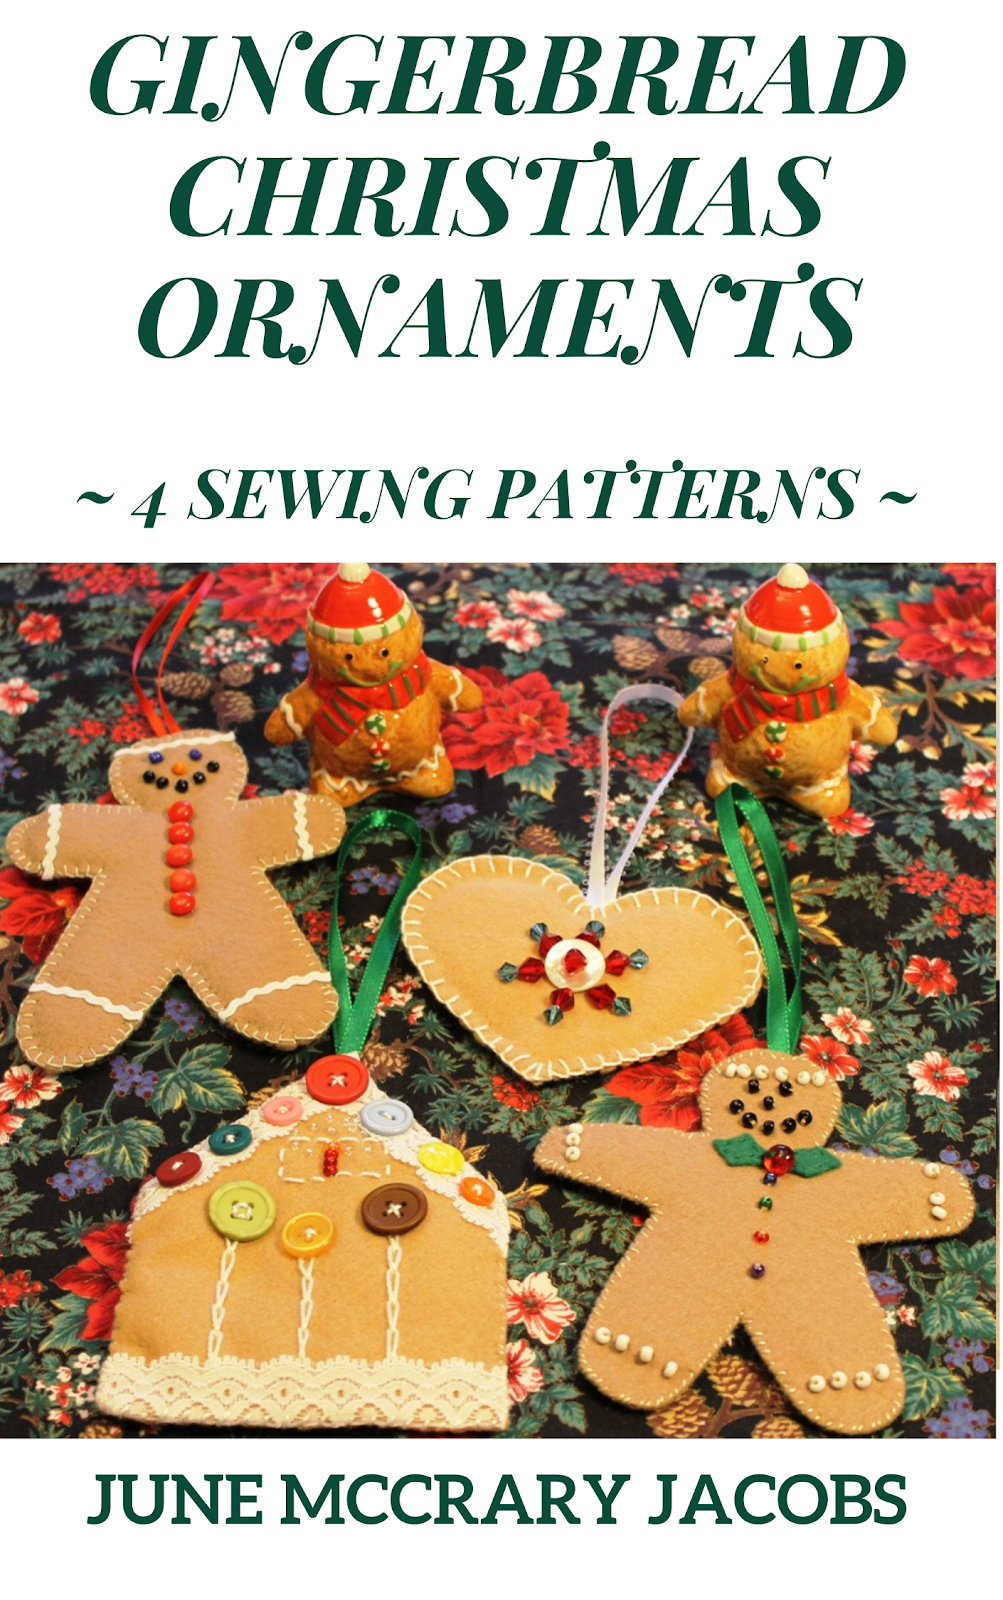 FIND MY 'GINGERBREAD CHRISTMAS ORNAMENTS' SEWING PATTERN BOOK ON AMAZON!